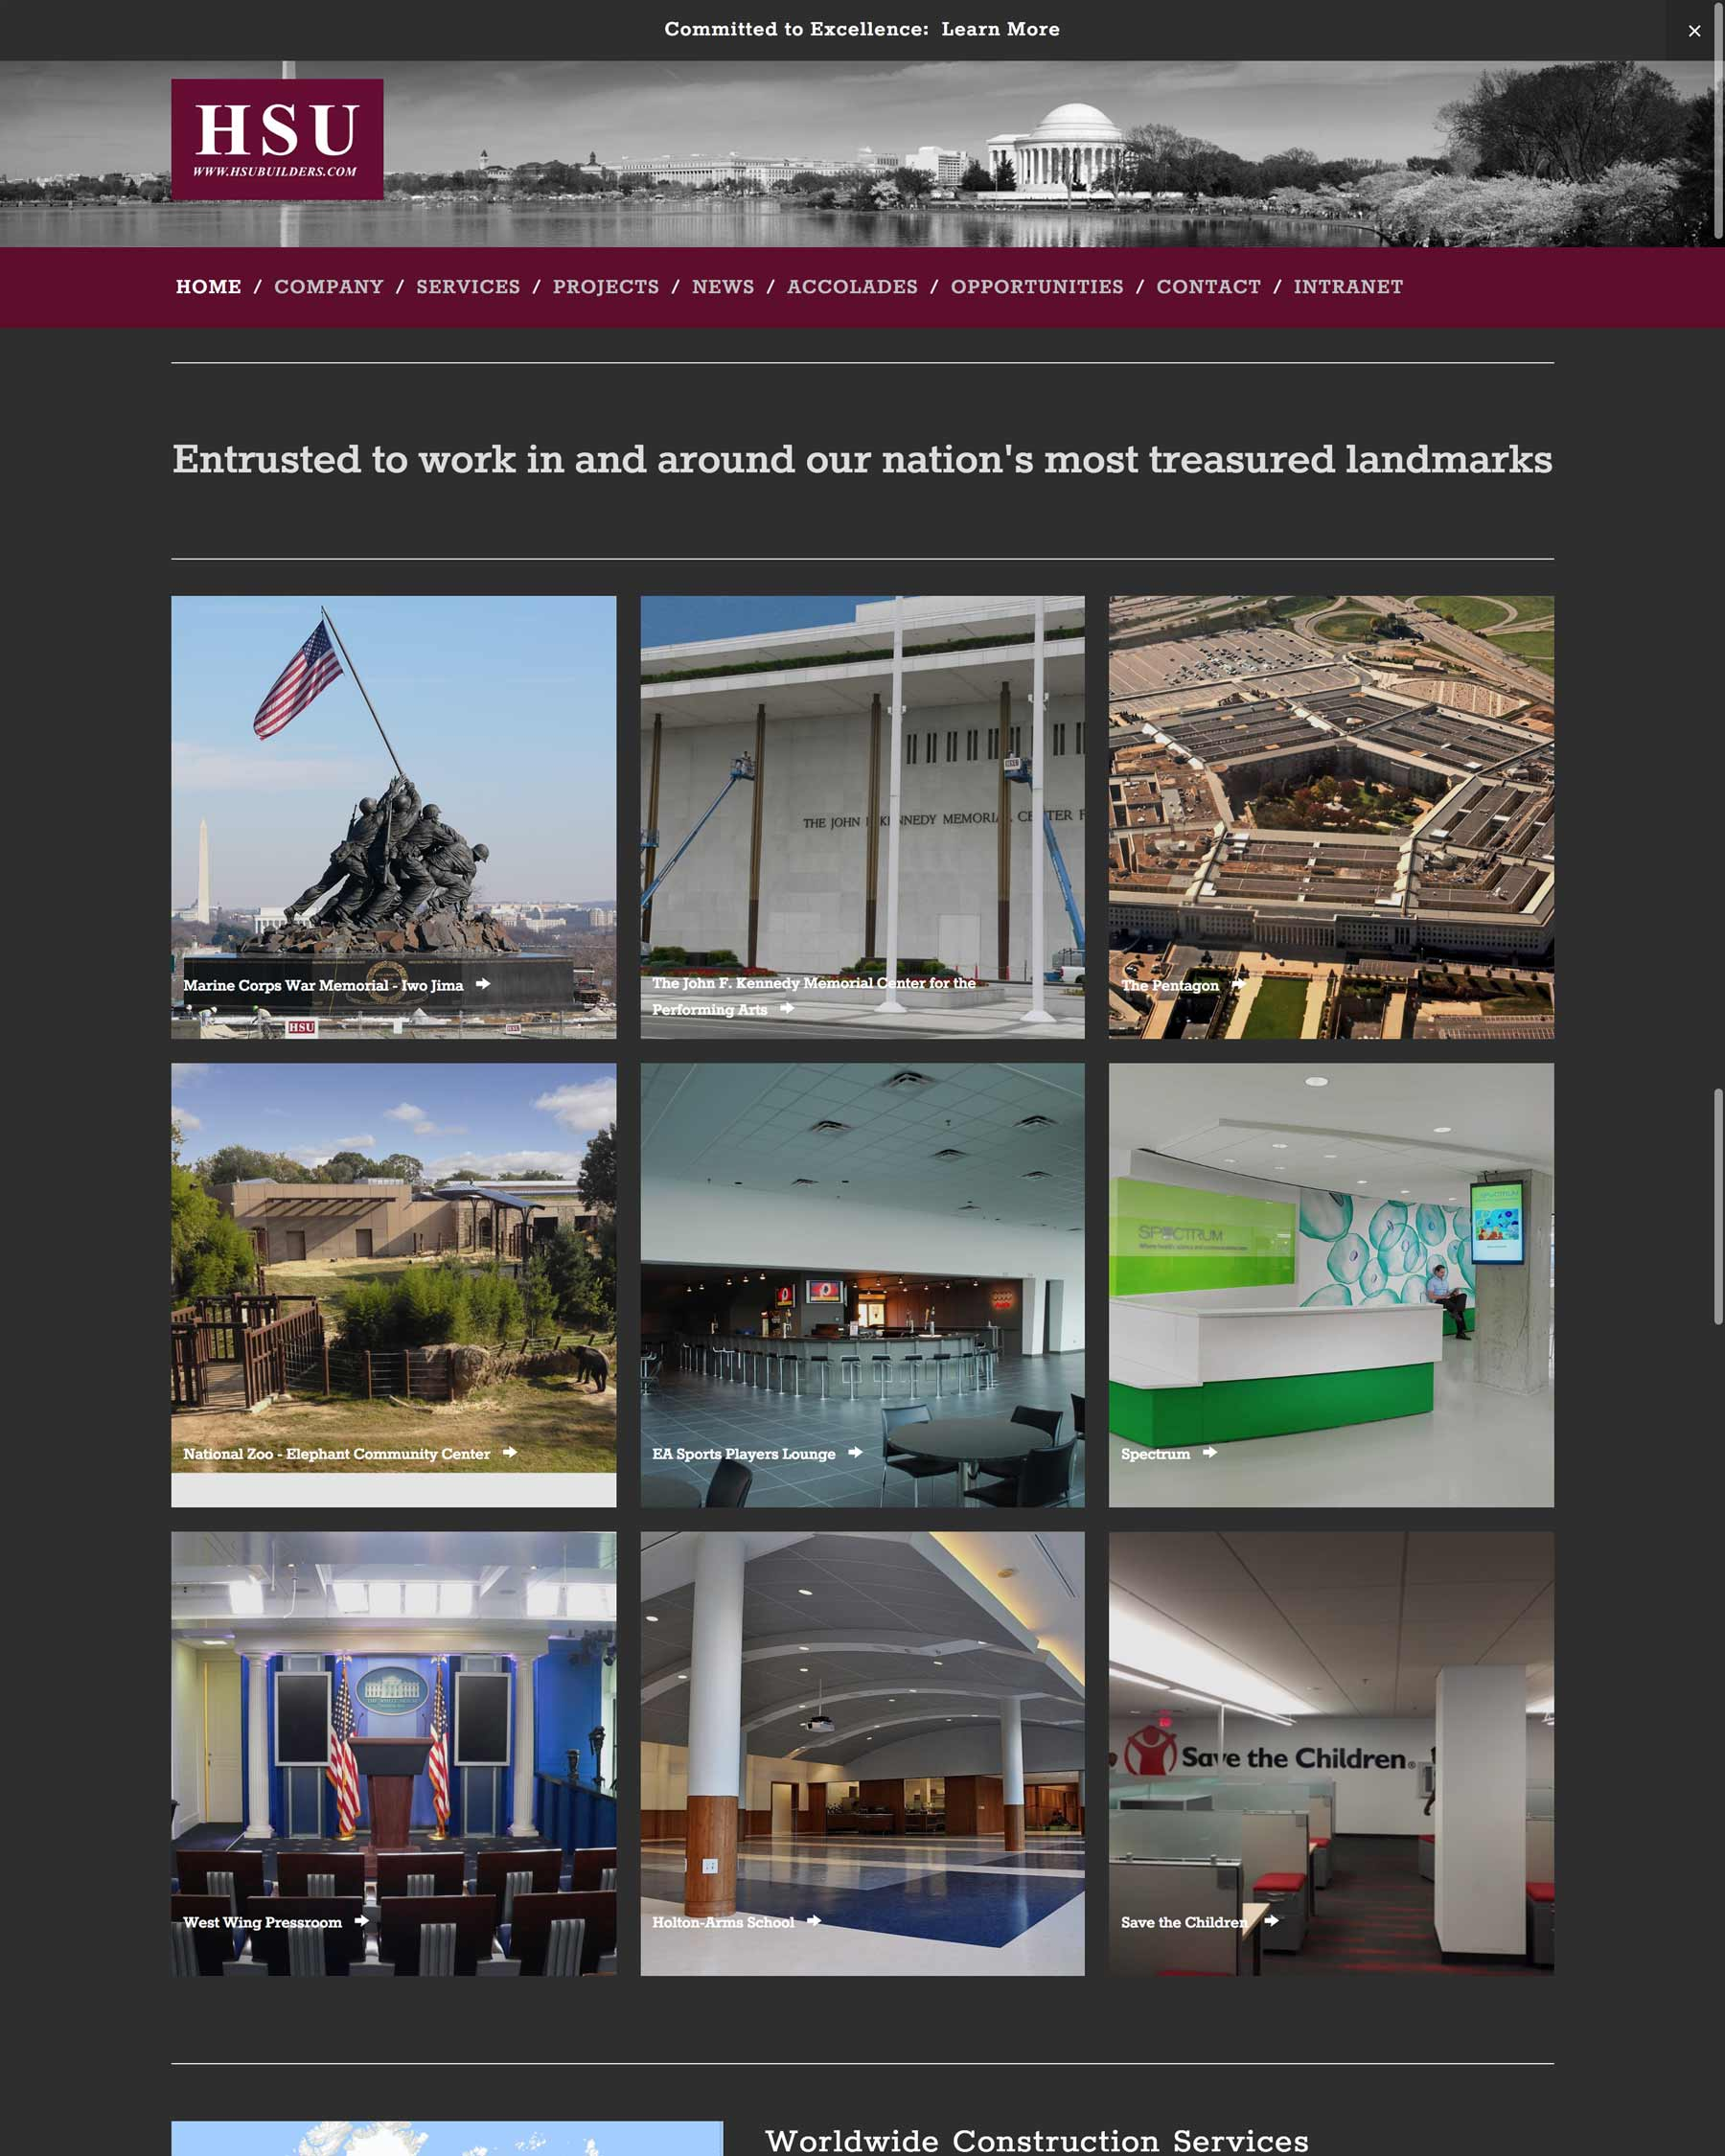 HSU Development - A Construction Firm Specializing In Federal Government Facilities